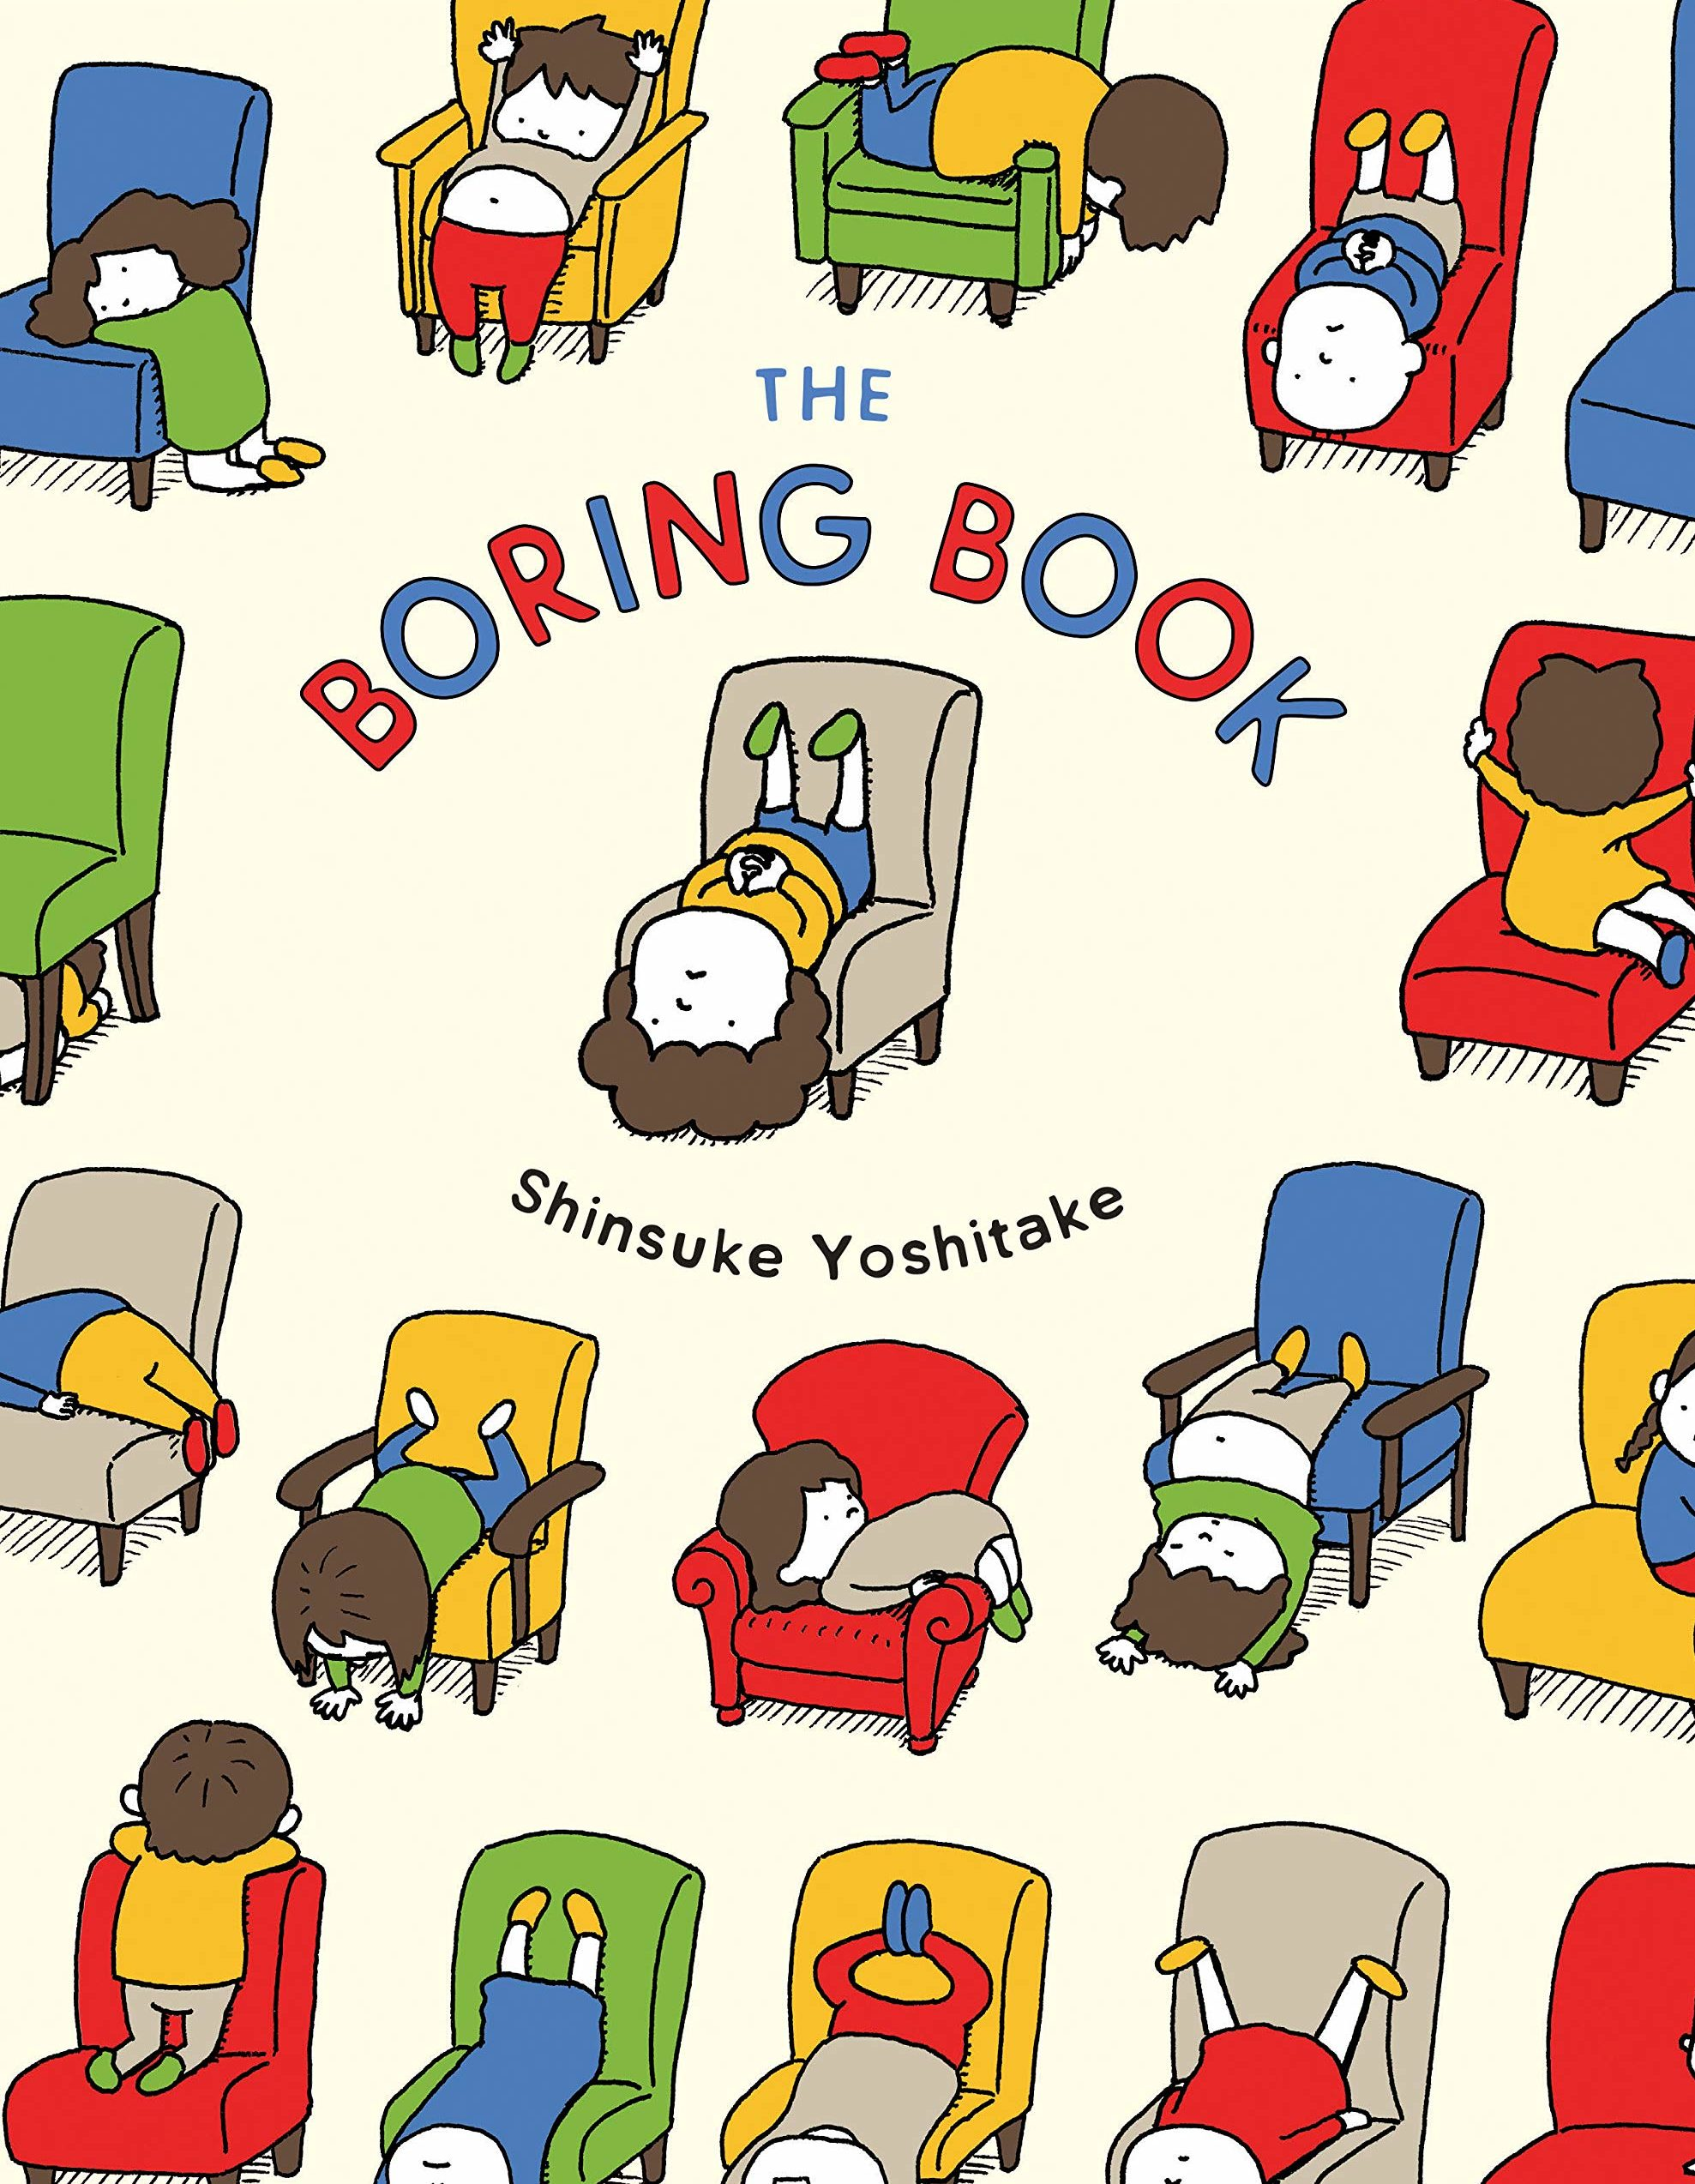 A picture book cover depicting many different kids sitting in ridiculous positions upon chairs in different colors.